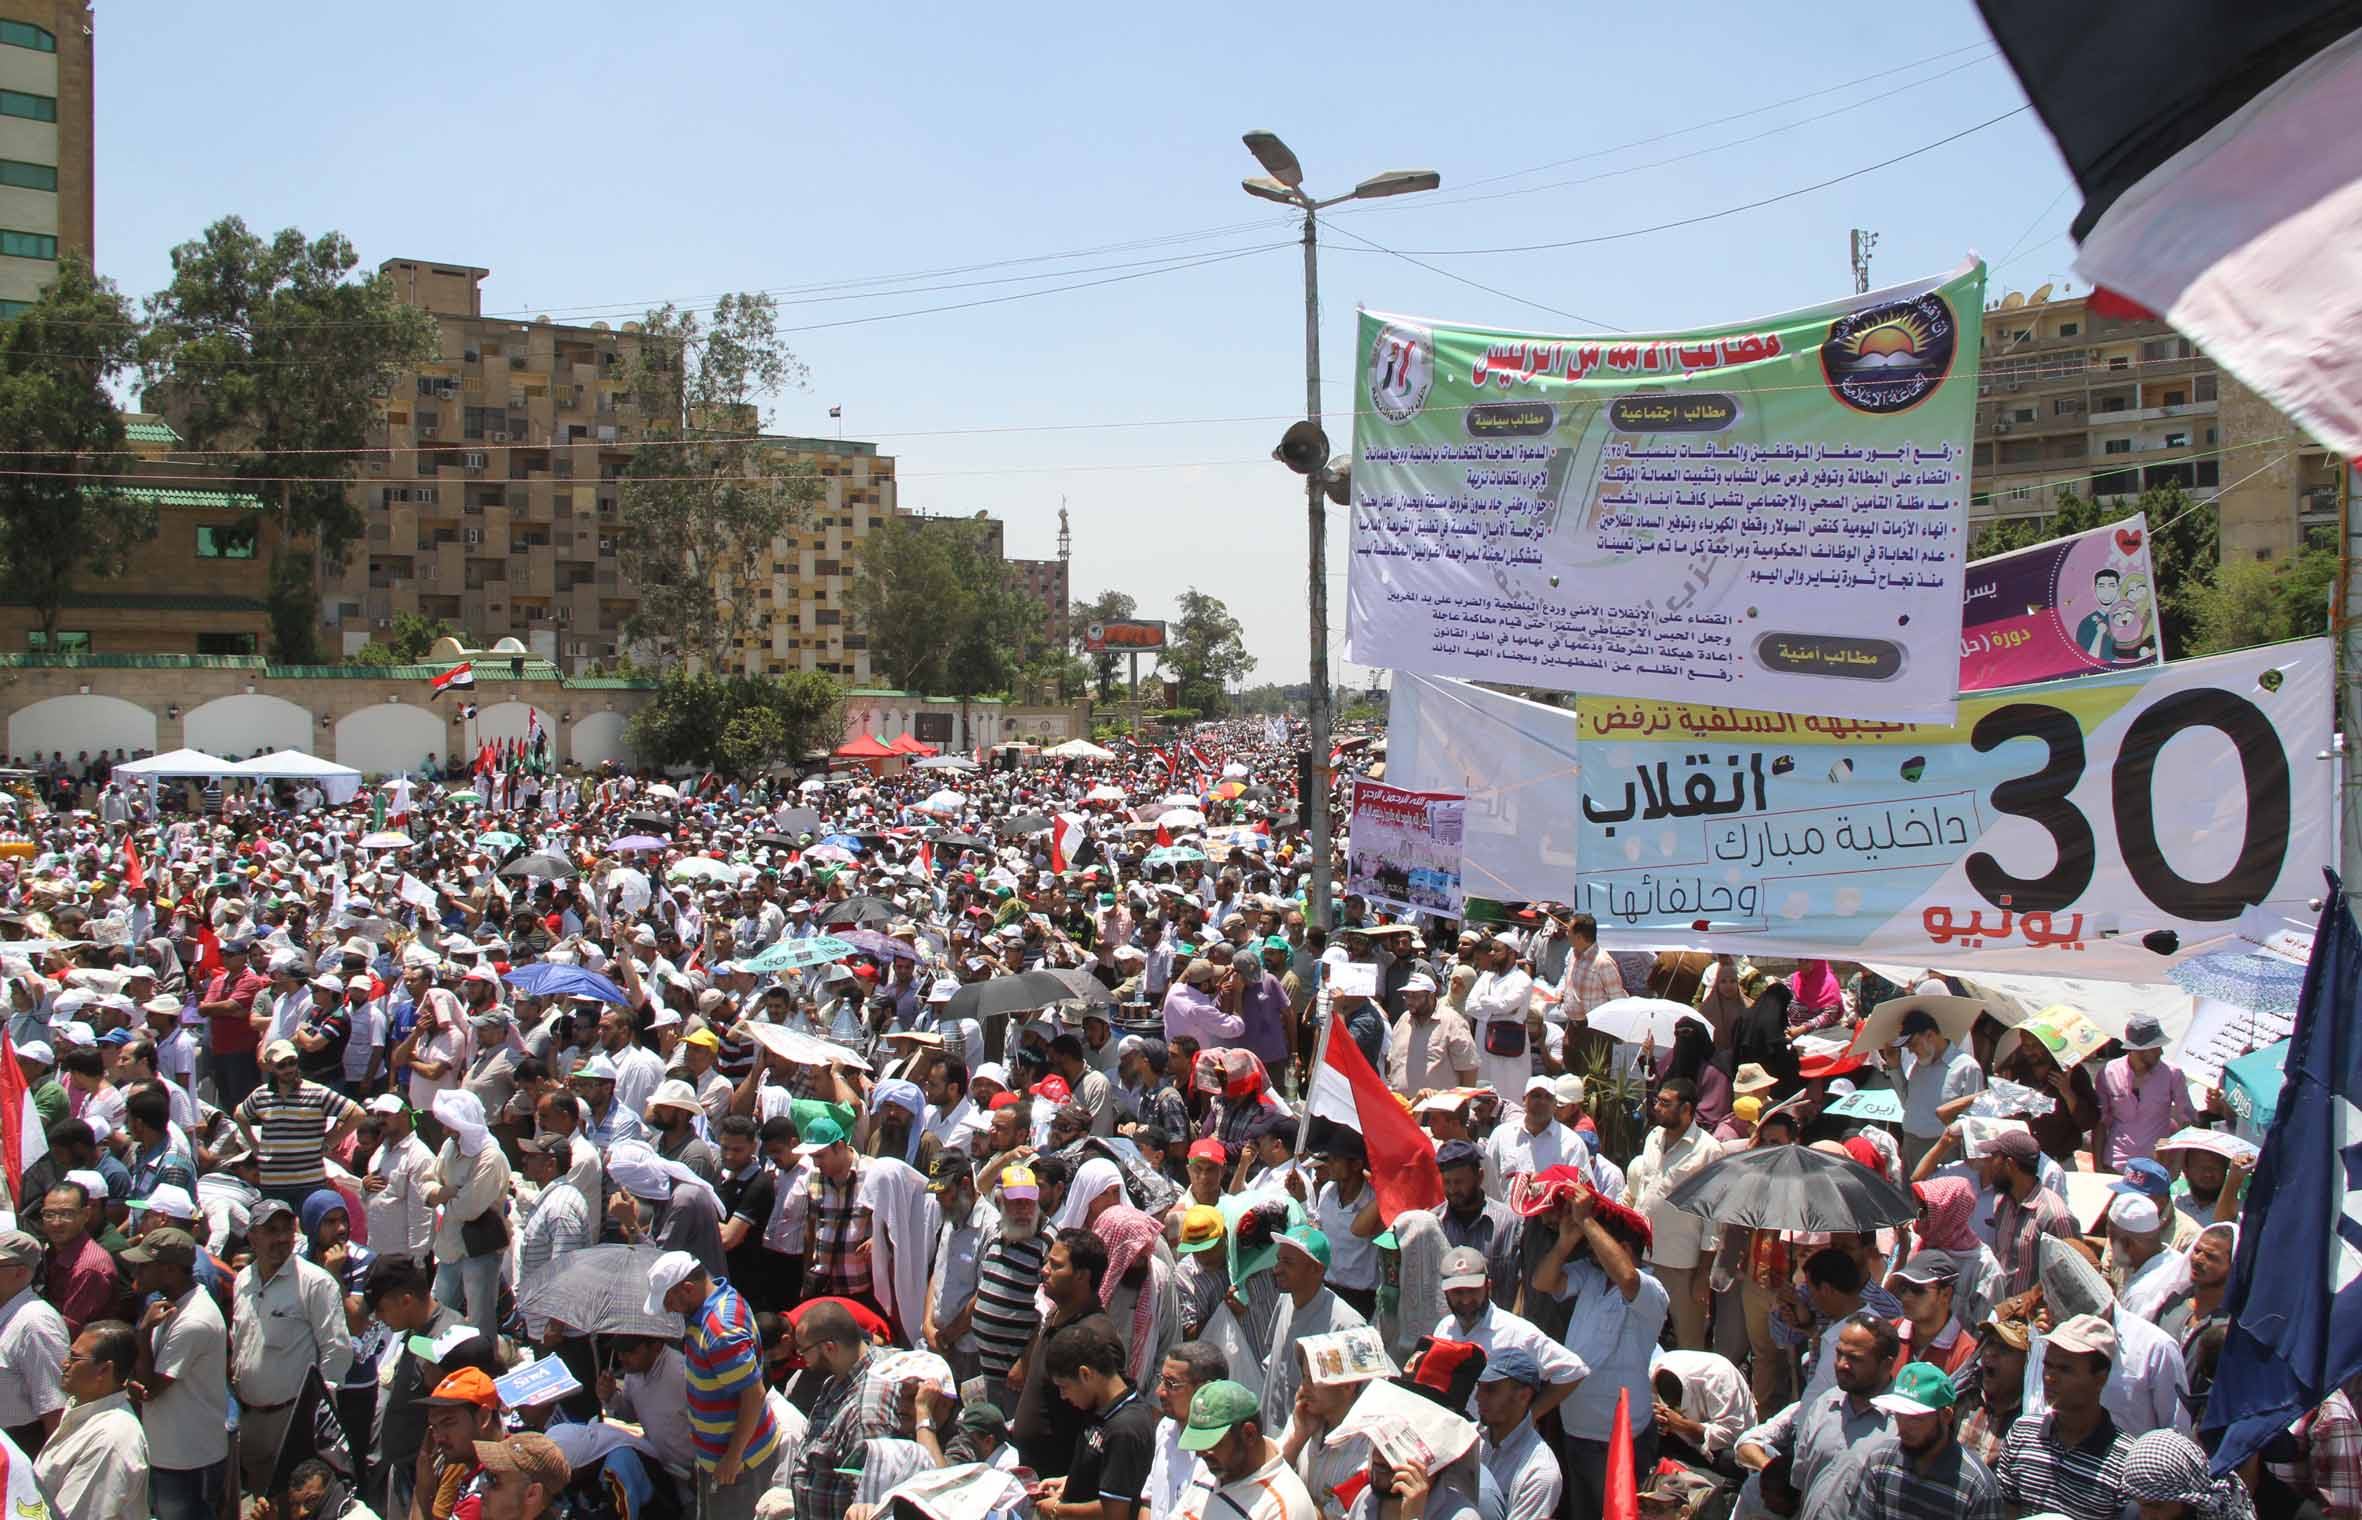 The National Coalition for Legitimacy said on Wednesday that it calls on all individuals and institutions to abide by the constitution and respect the democratic process that elected President Mohamed Morsi. (Photo by Ahmed Al-Malky)